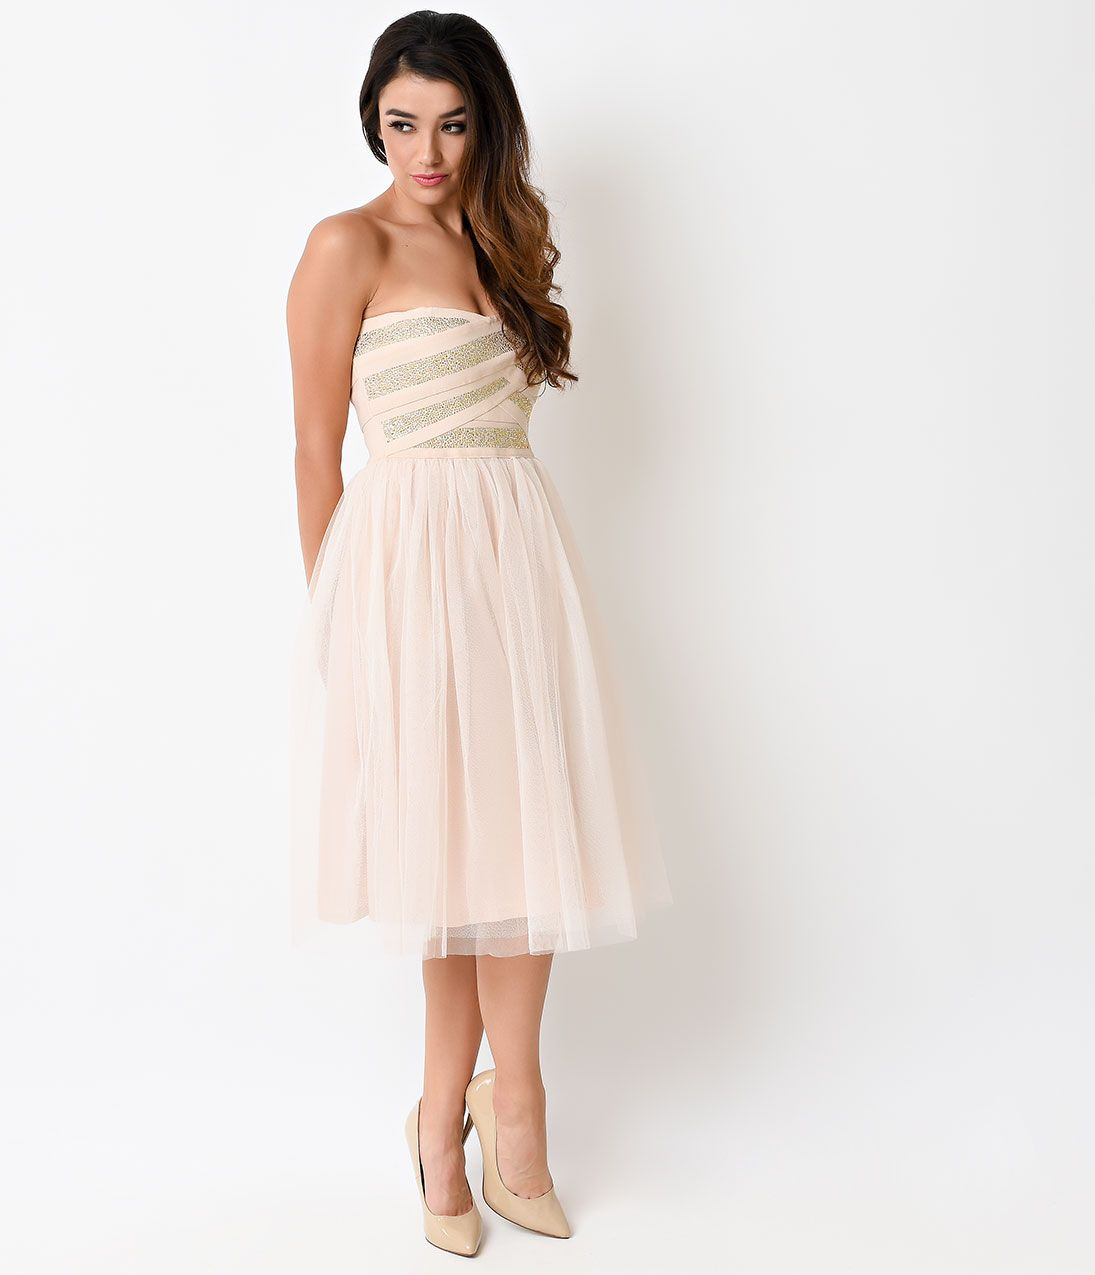 Suzy q is that you perfect for darlings devoted to vintage prom